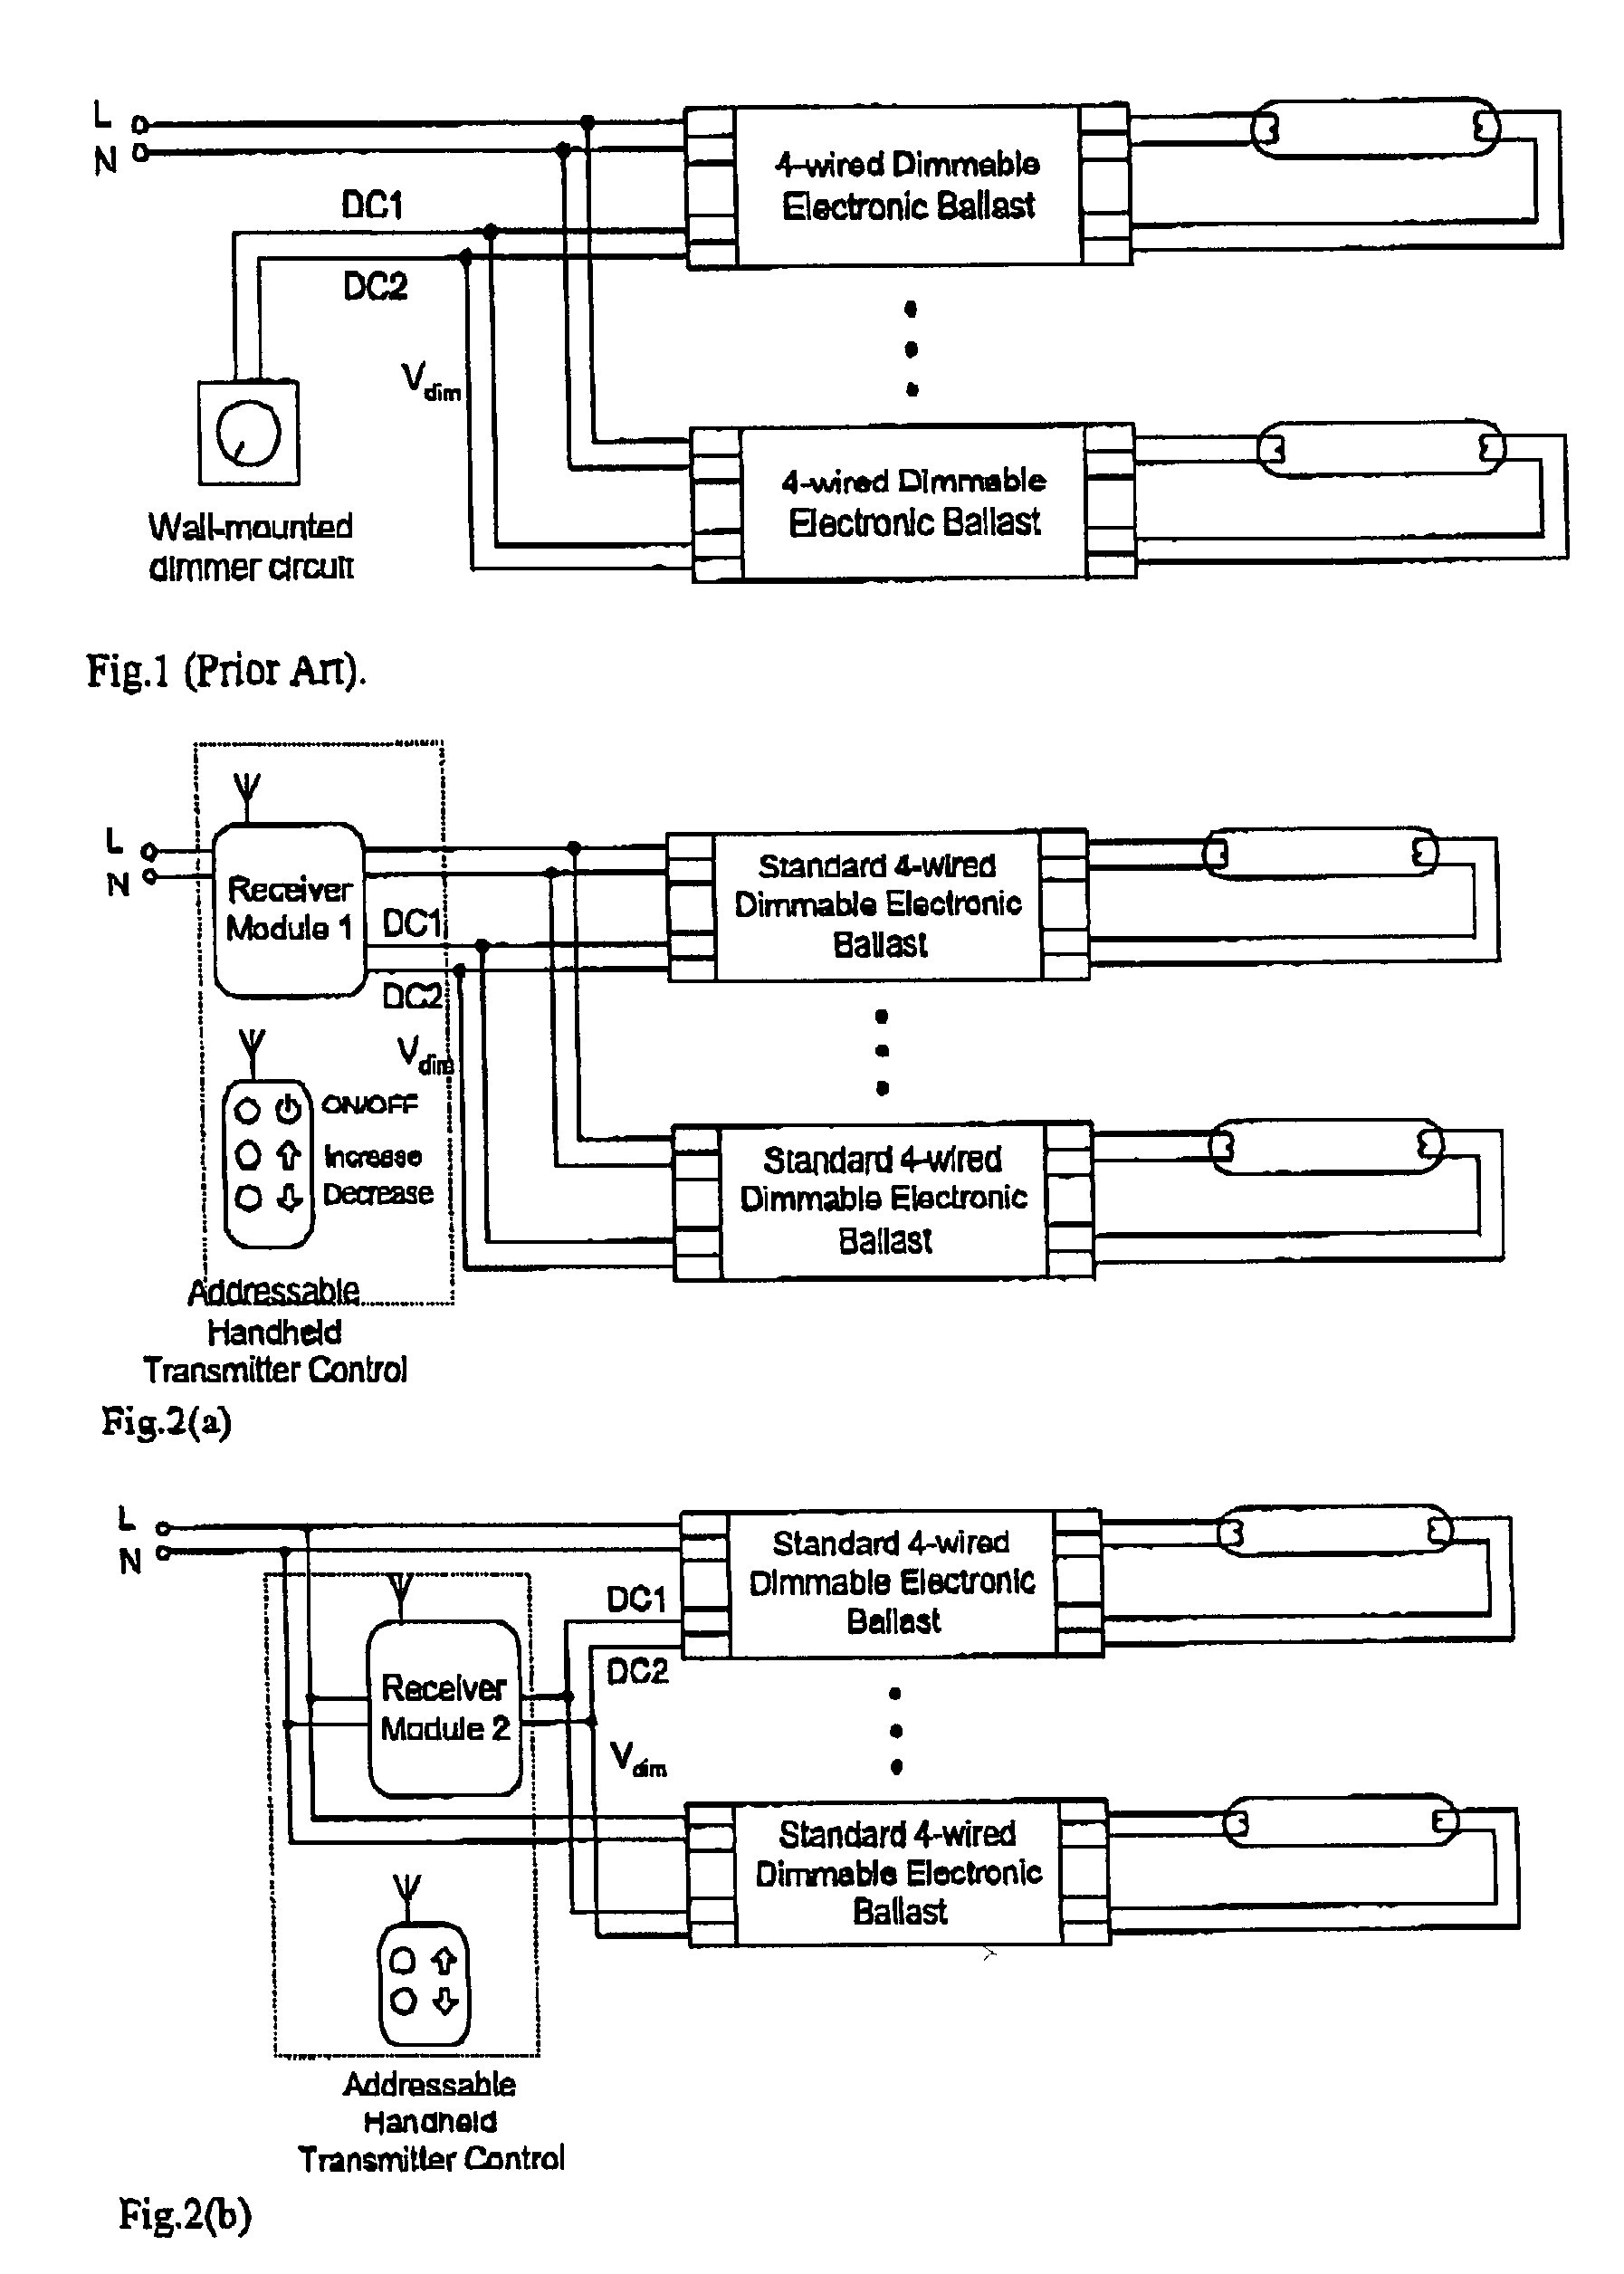 Lutron Dimmer 3 Way Wire Diagram Inspirational 3 Way Wiring Diagrams Diagram Of Lutron Dimmer 3 Way Wire Diagram